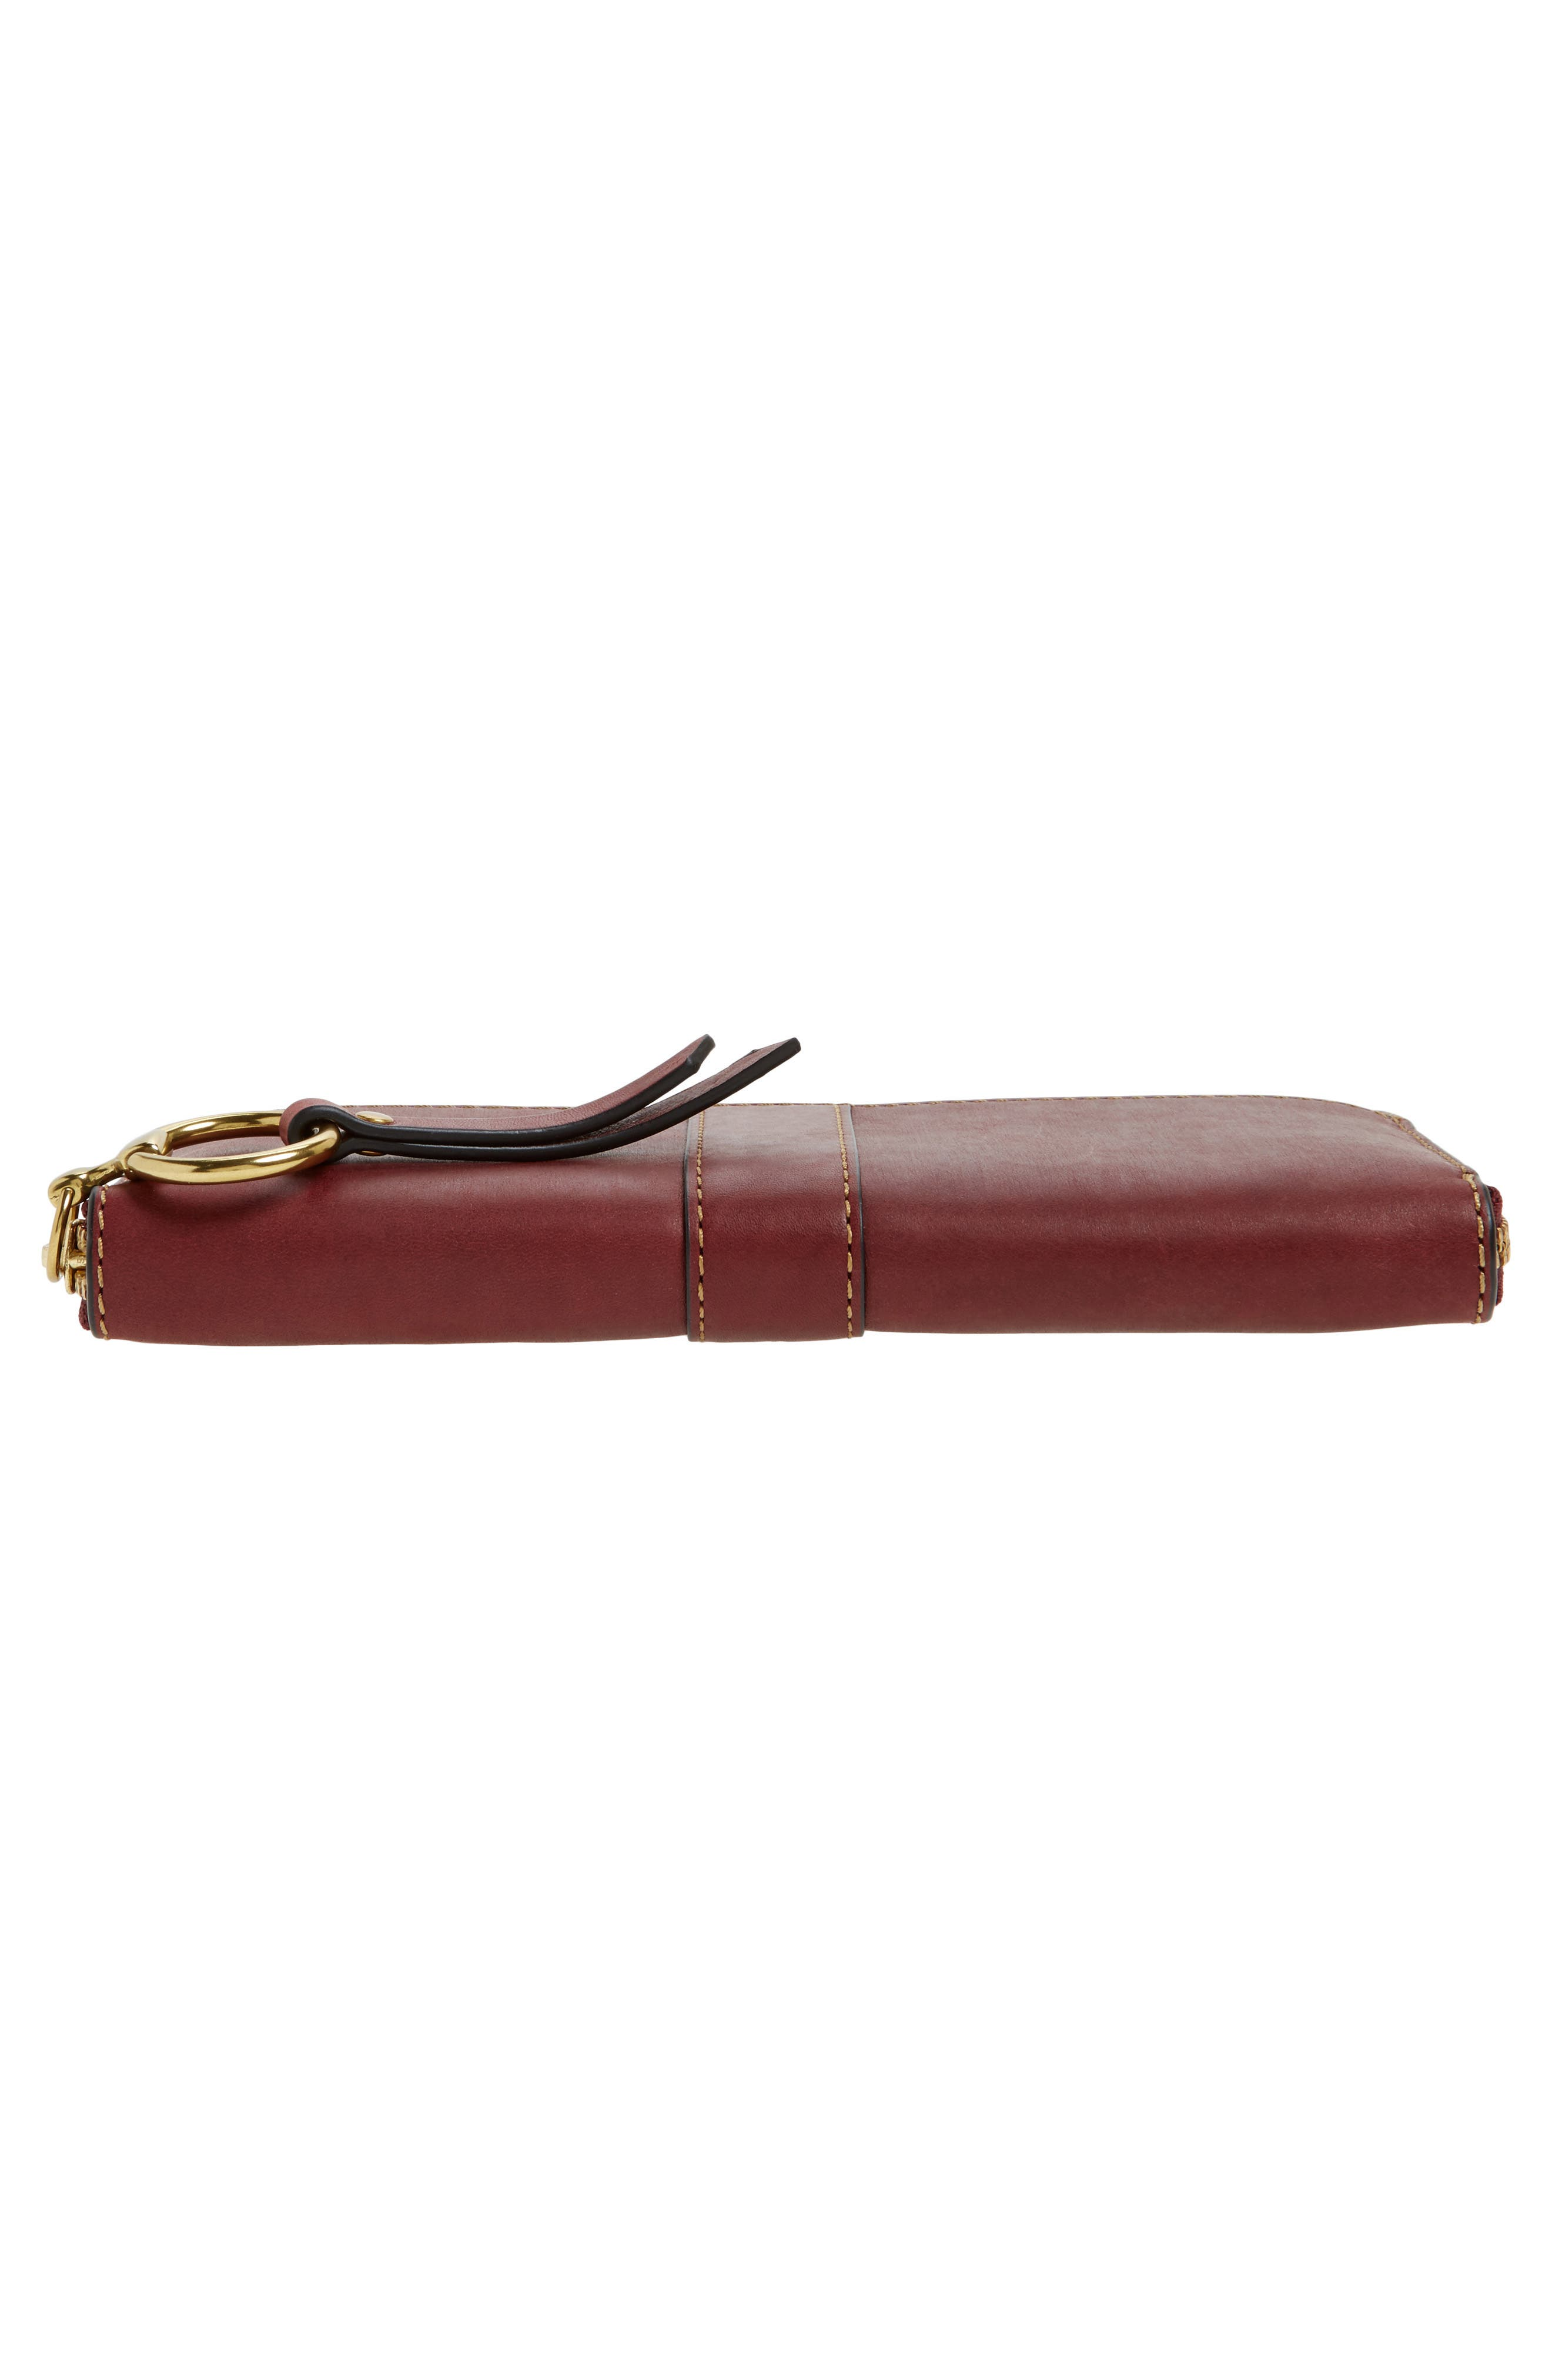 Ilana Harness Leather Zip Wallet,                             Alternate thumbnail 12, color,